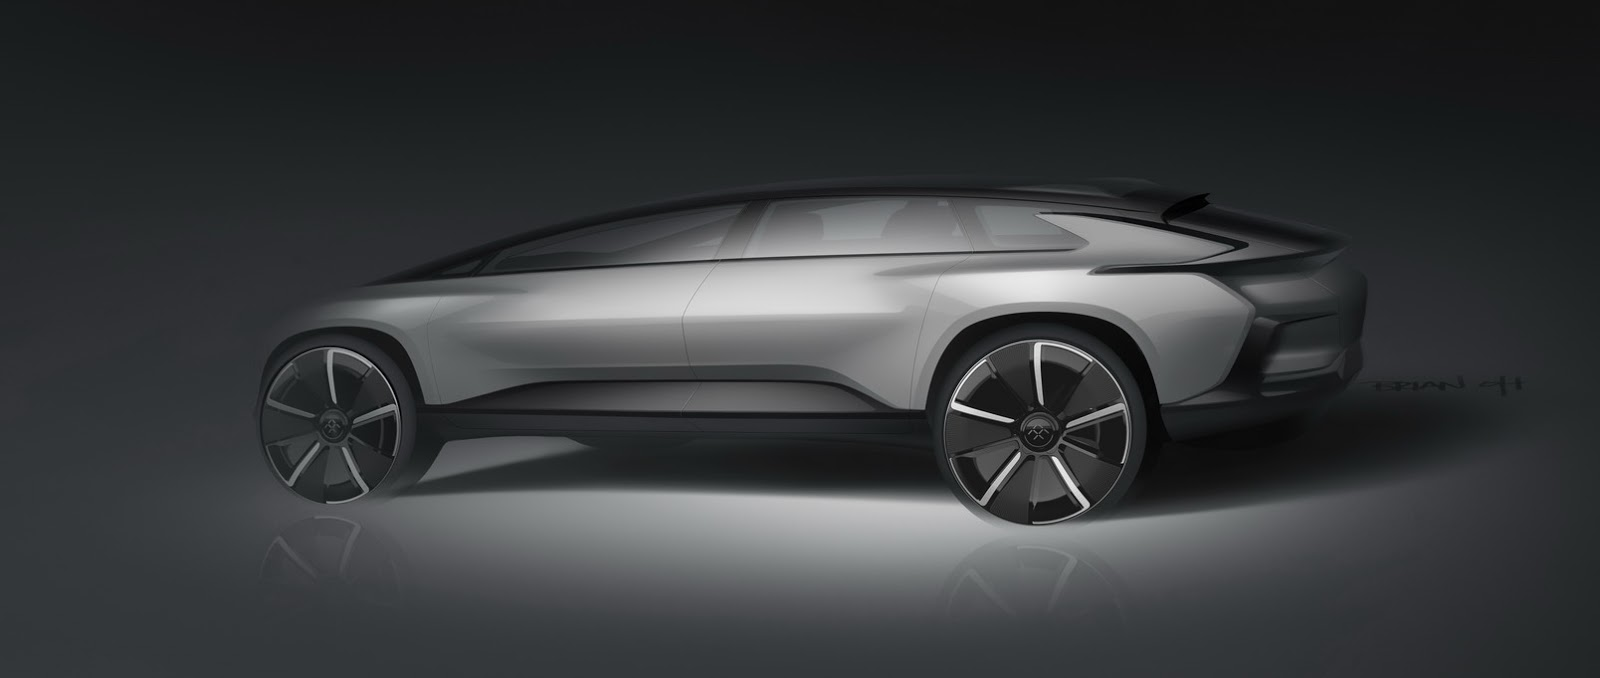 Faraday Future FF 91 (6)